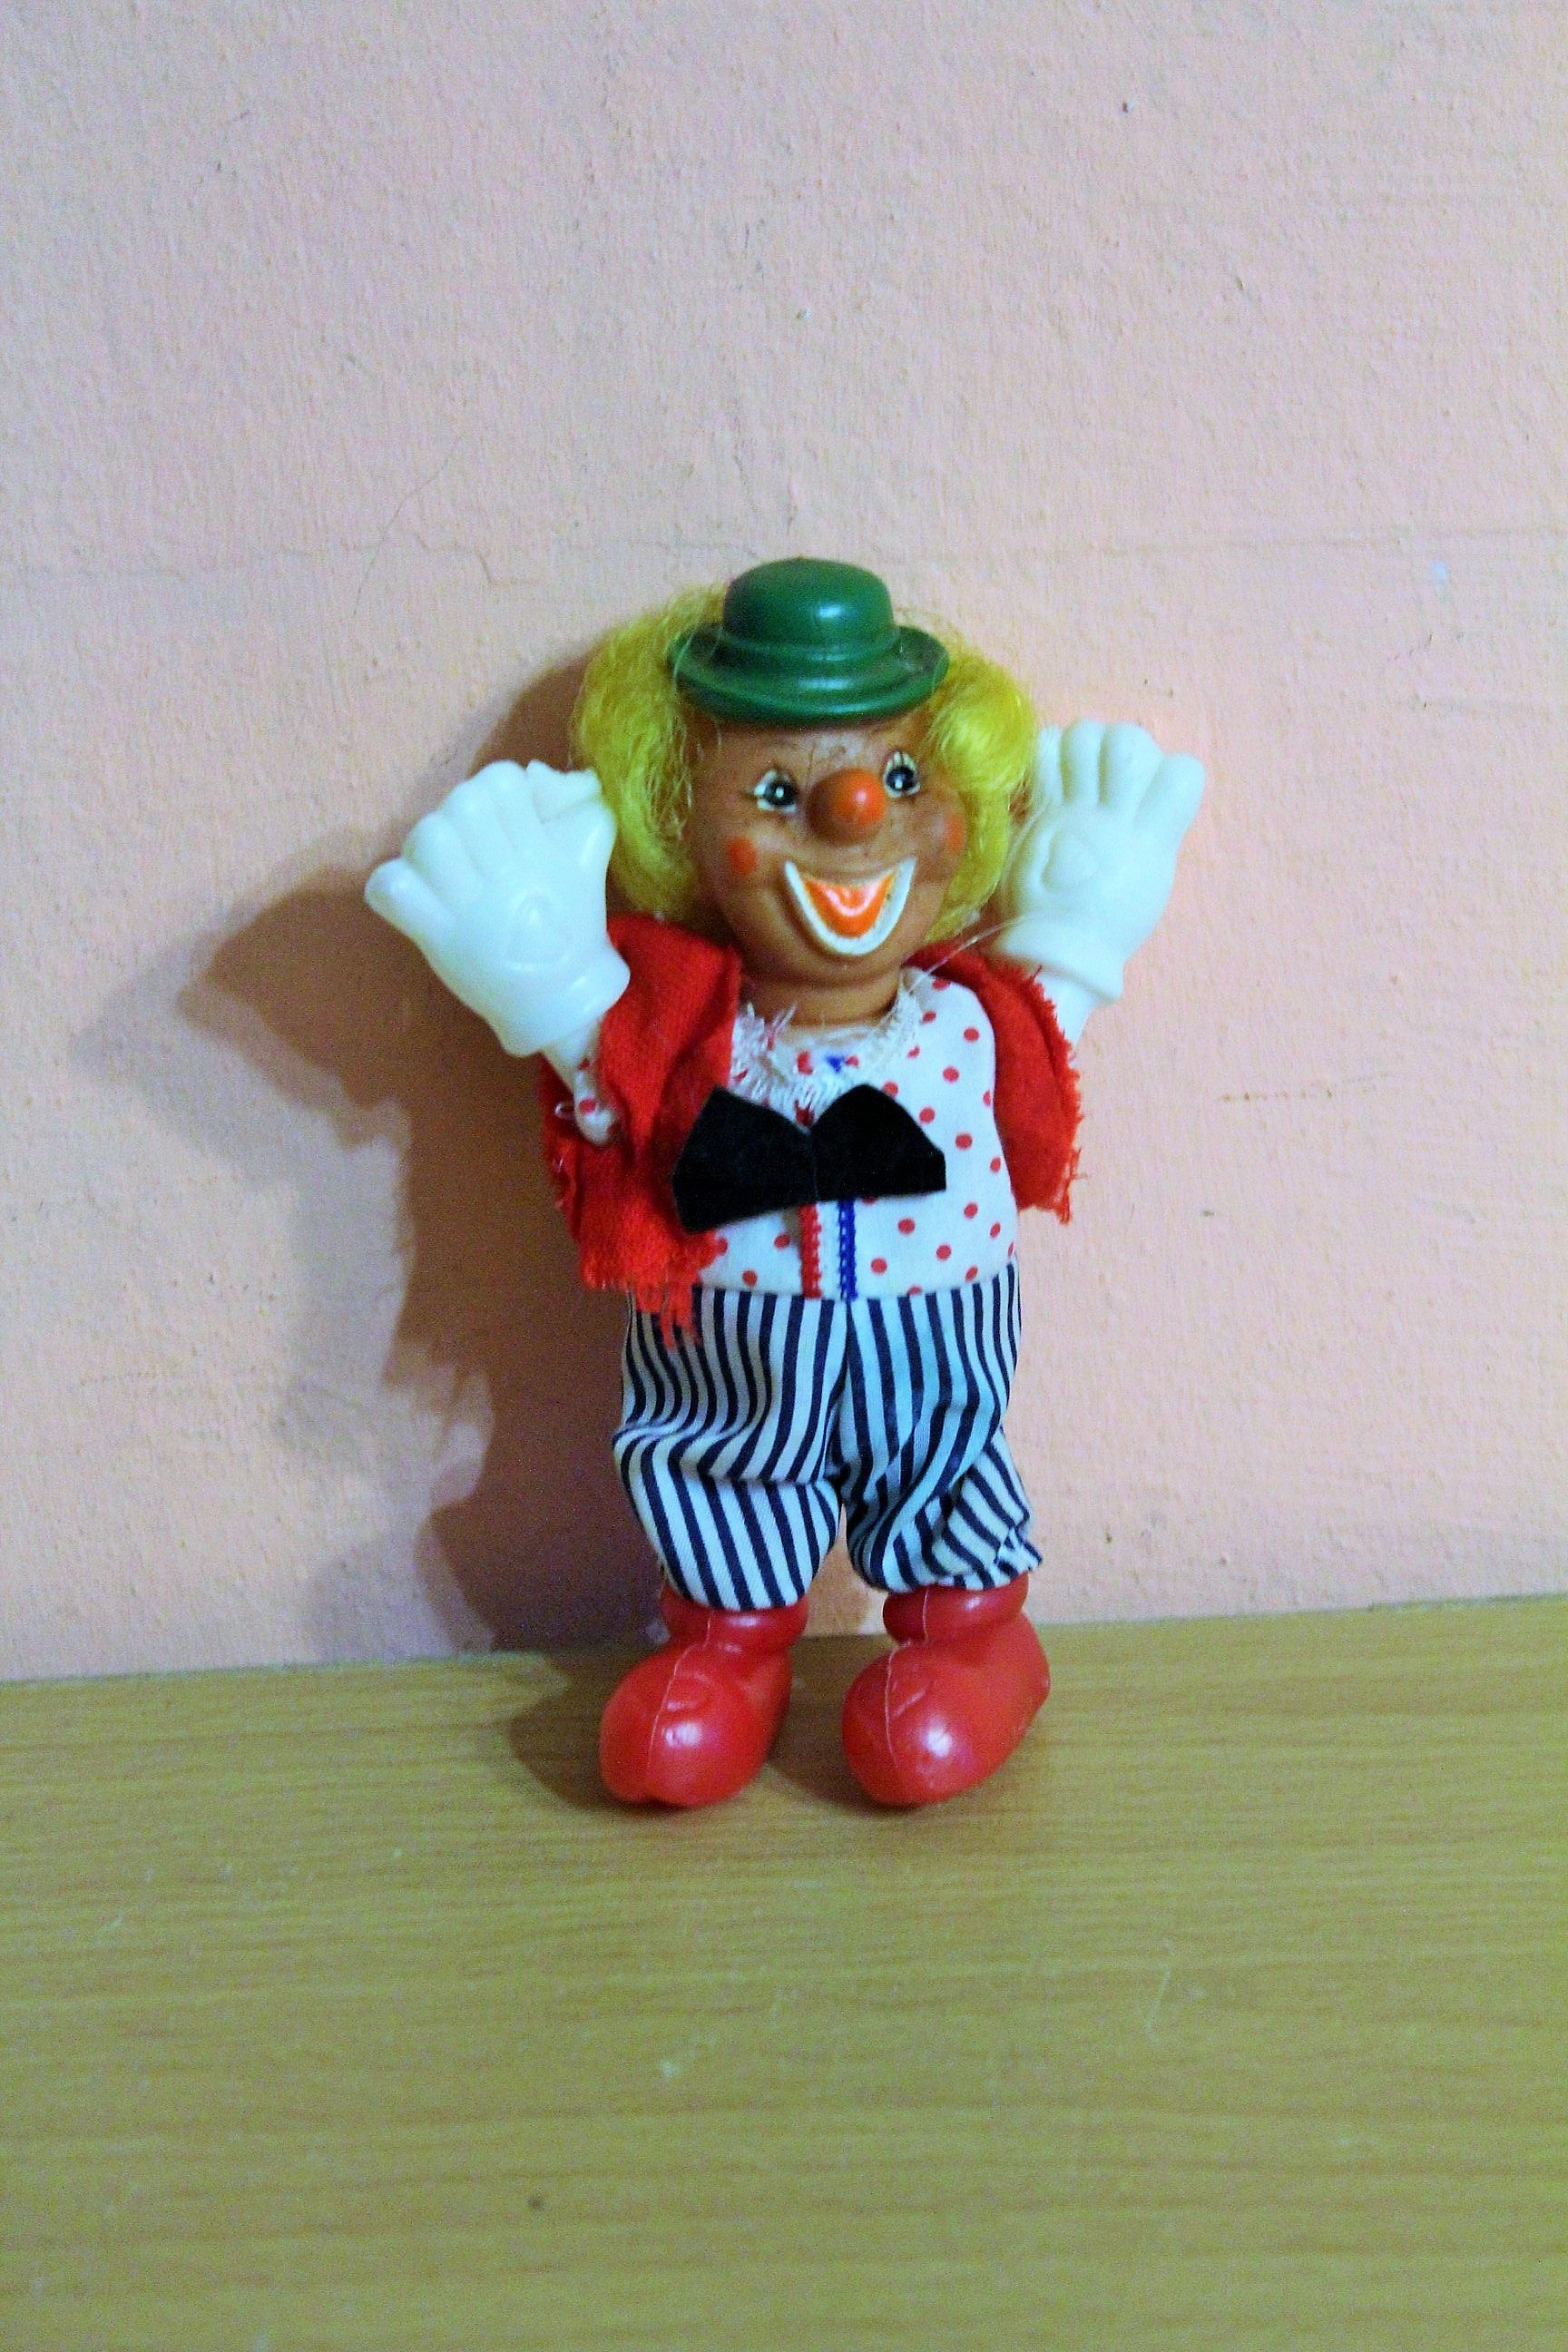 Porcelain Clown Doll, Ceramic Clown Figurine, Blonde Hair Clown, Red Vest, Small Mini Clown, Collectible by Grandchildattic on Etsy